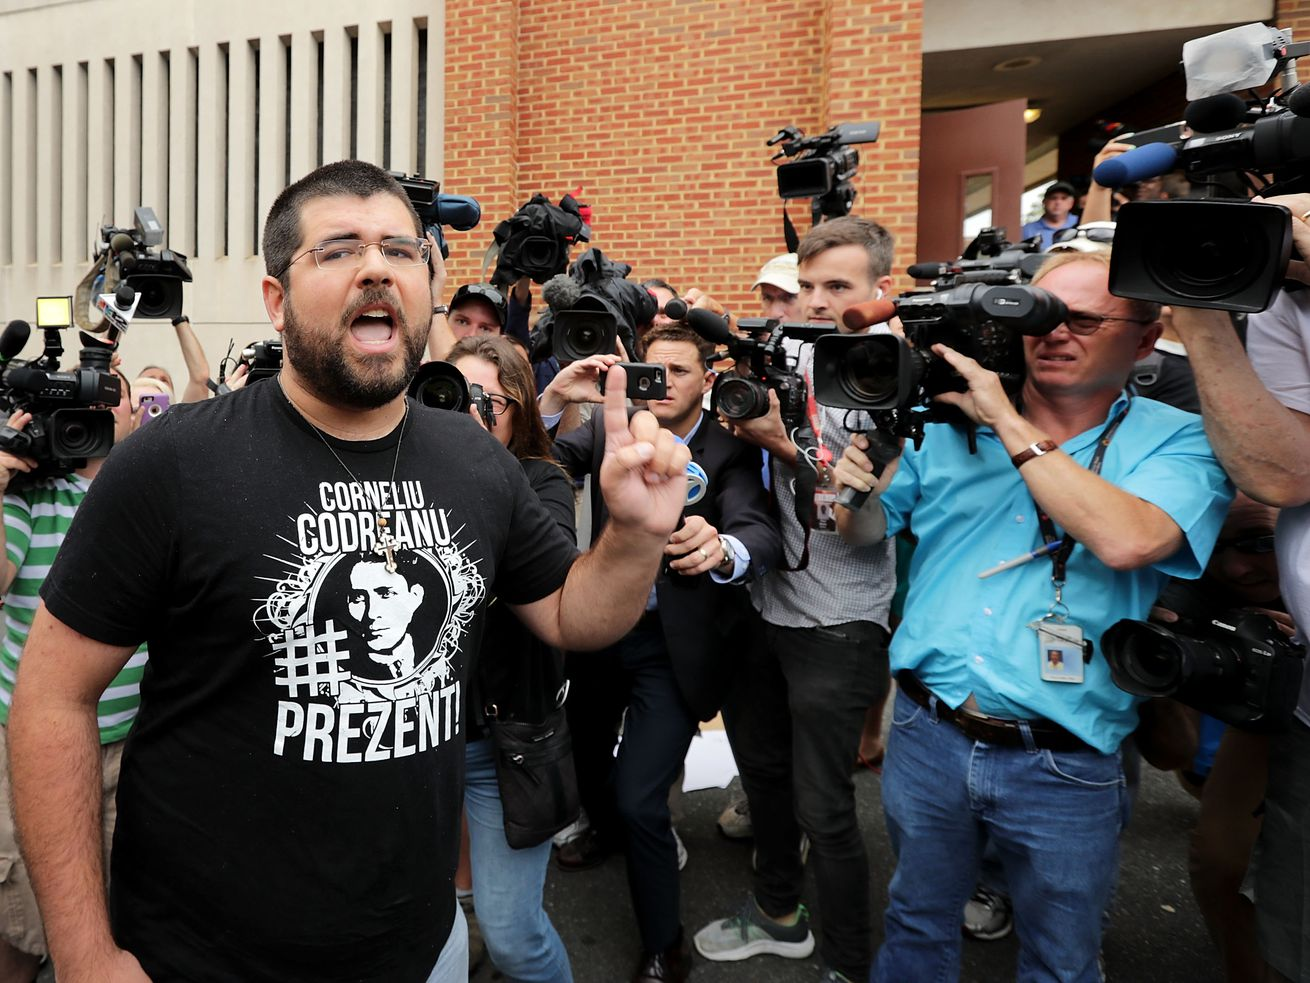 After the 2017 Virginia Unite the Right march, a man shouts at reporters gathered outside the Charlottesville General District Court.